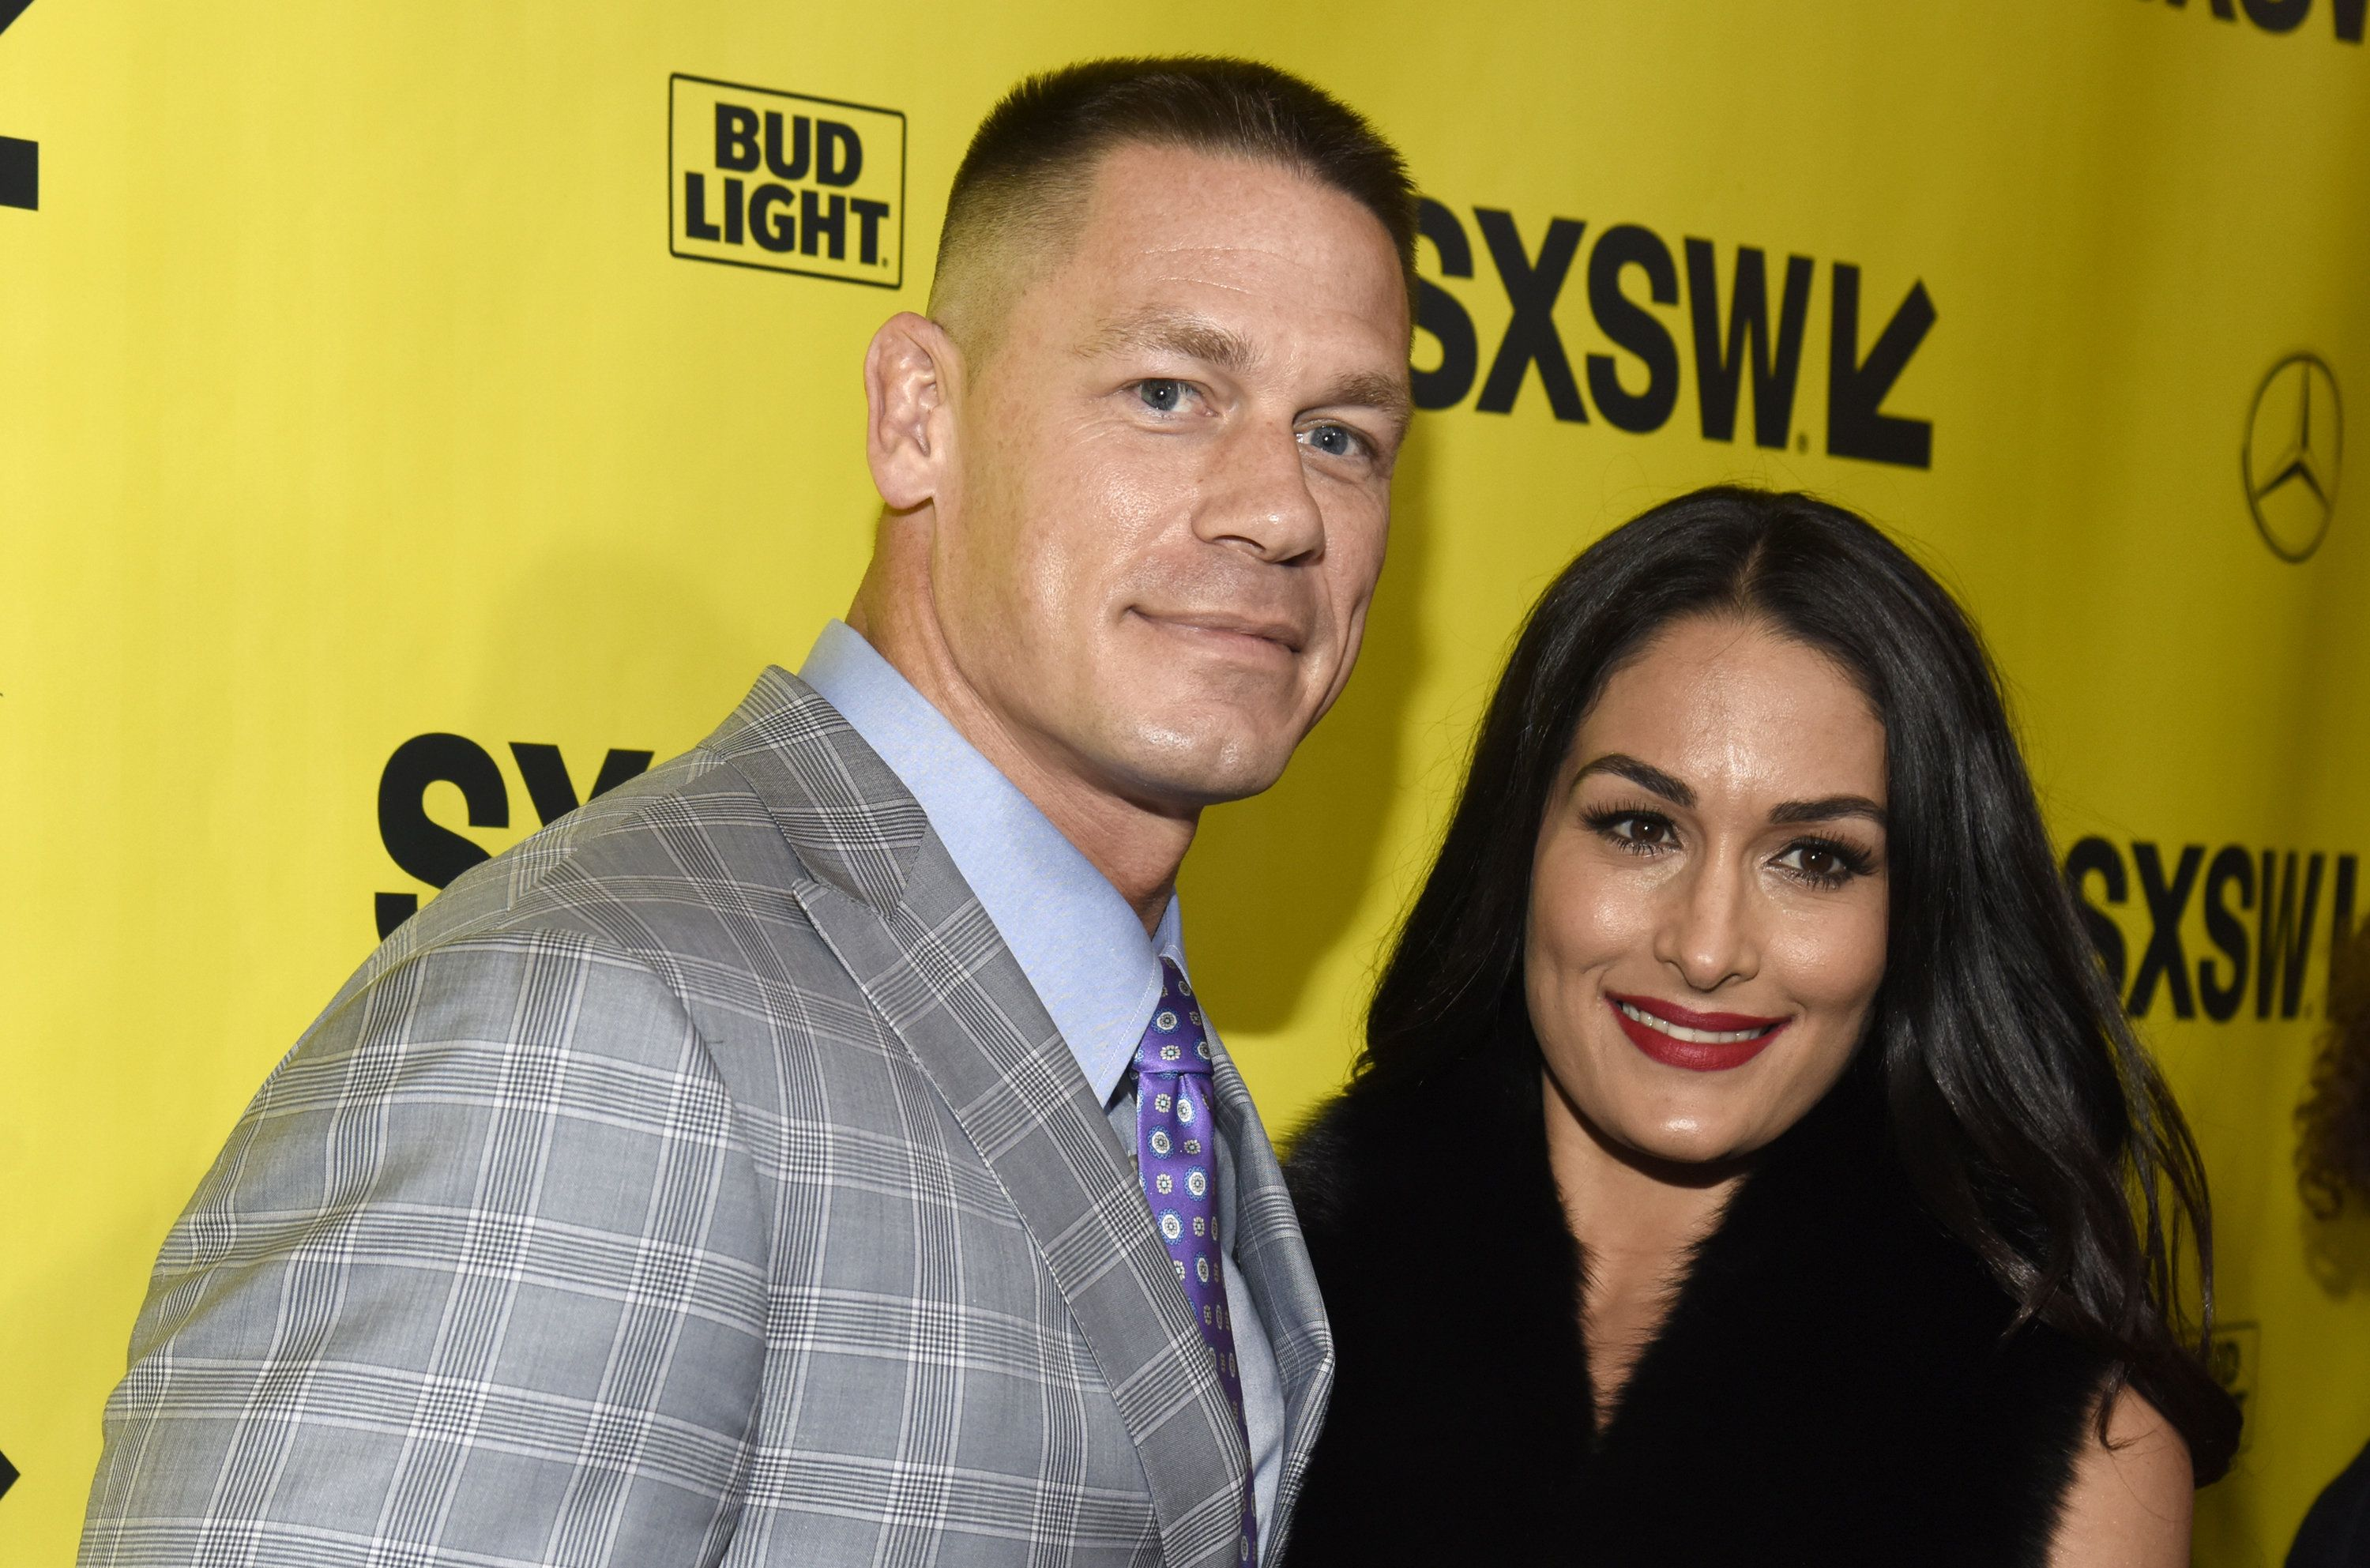 AUSTIN, TX - MARCH 10:  John Cena and Nikki Bella attend the 'Blockers' Premiere at the Paramount Theatre on March 10, 2018 in Austin, Texas.  (Photo by Tim Mosenfelder/Getty Images)